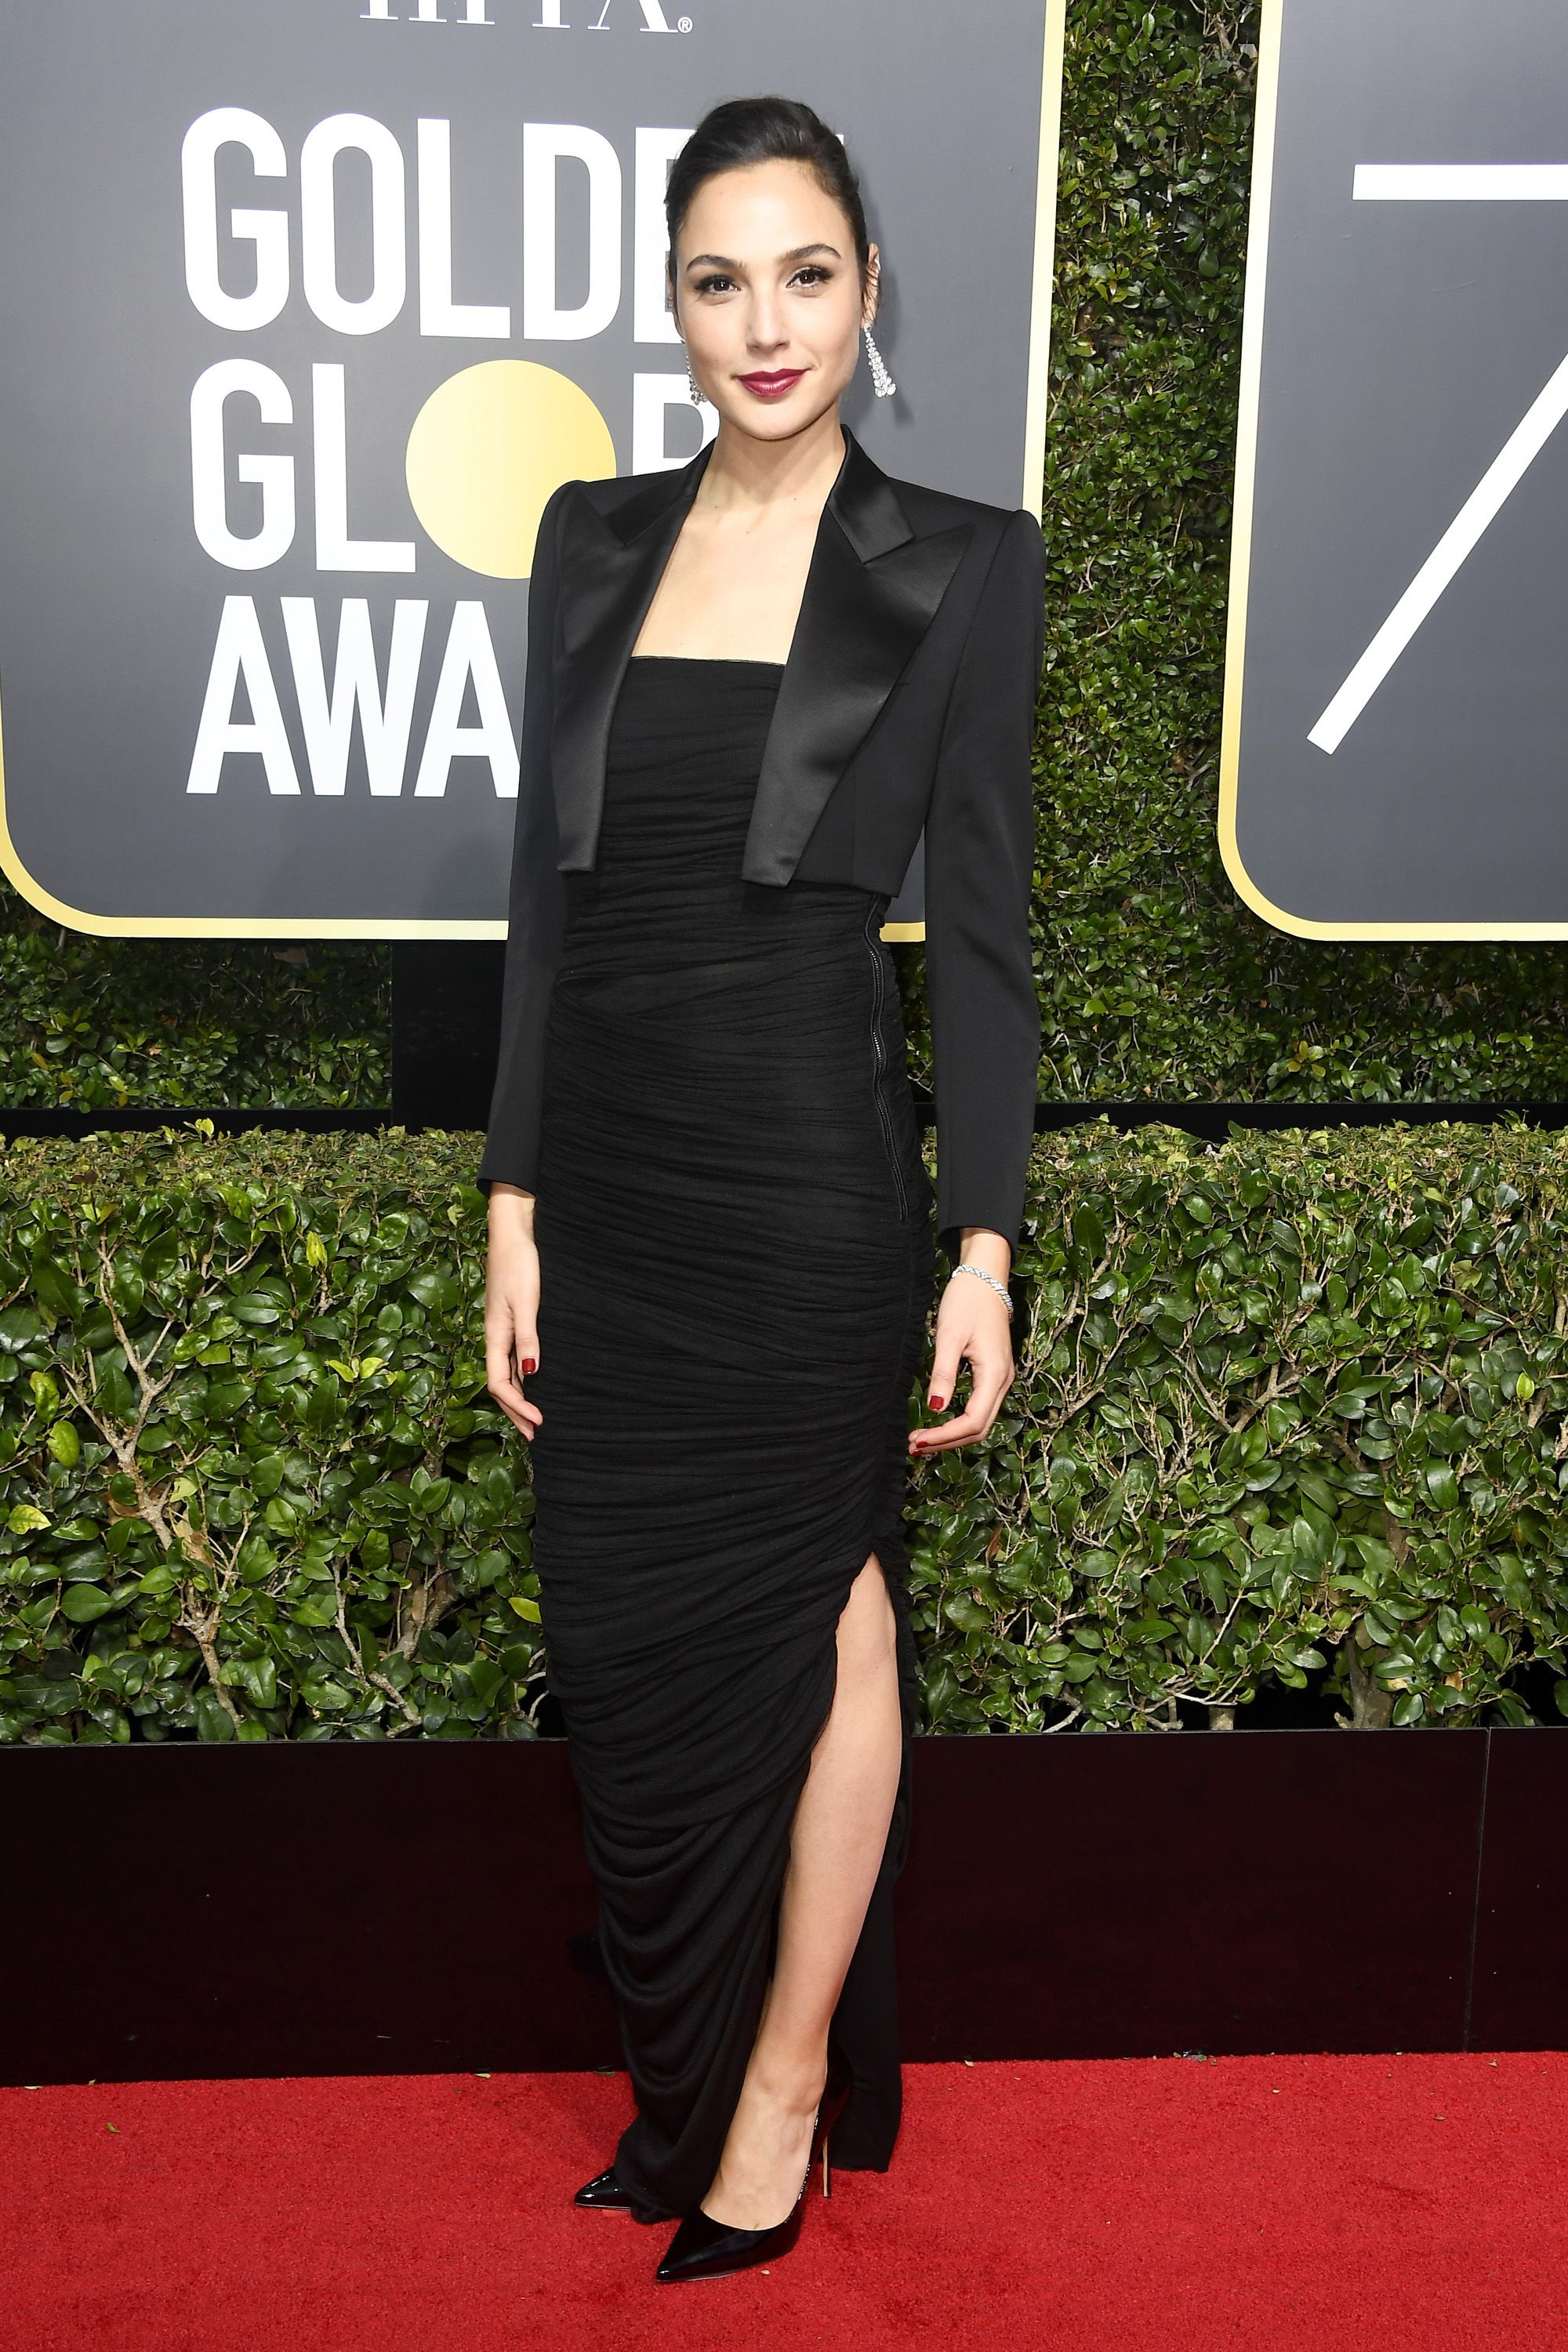 05bc0197432 Best Golden Globes Red Carpet Dresses 2018 - Celebrity Pictures From the  Golden Globes Red Carpet